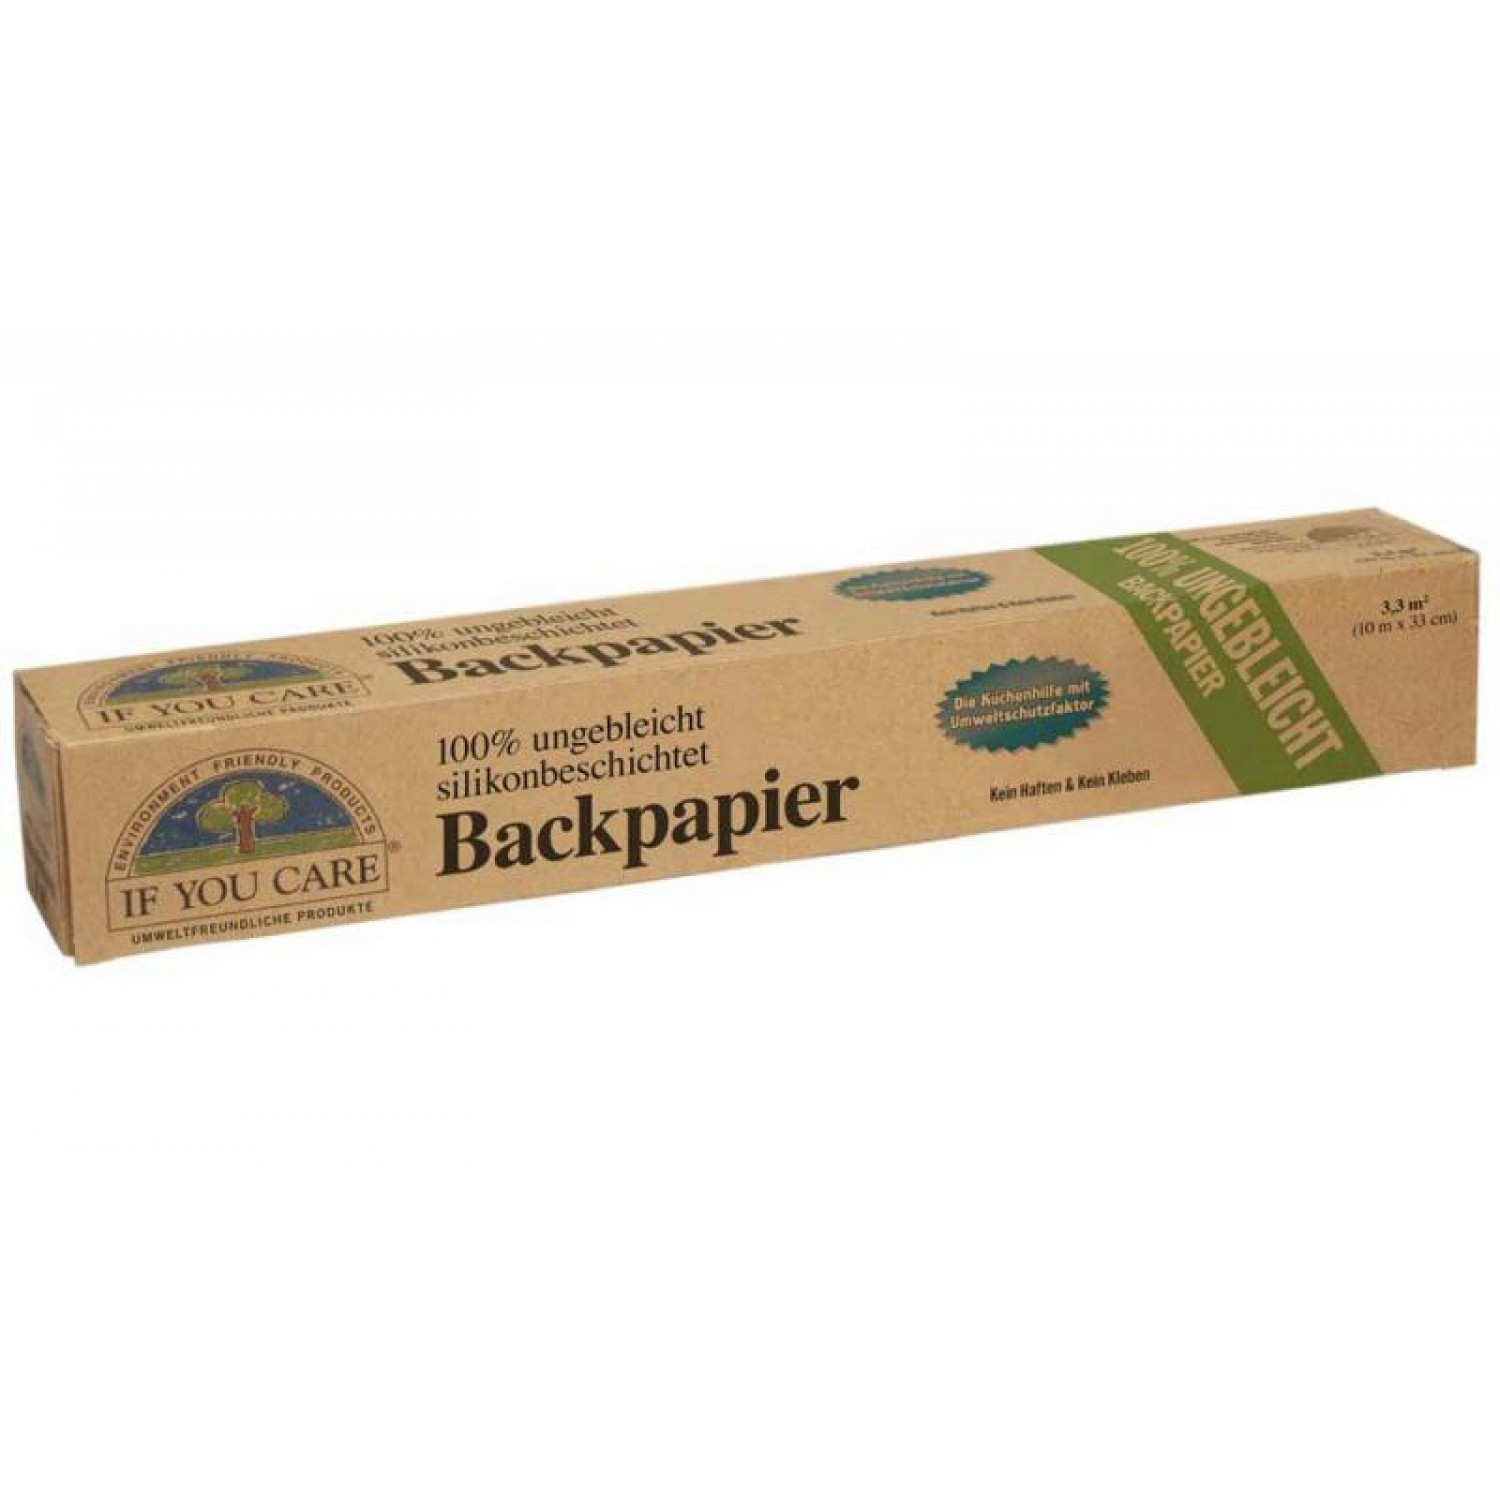 If You Care Parchment Baking Paper 10 m Roll | IYC